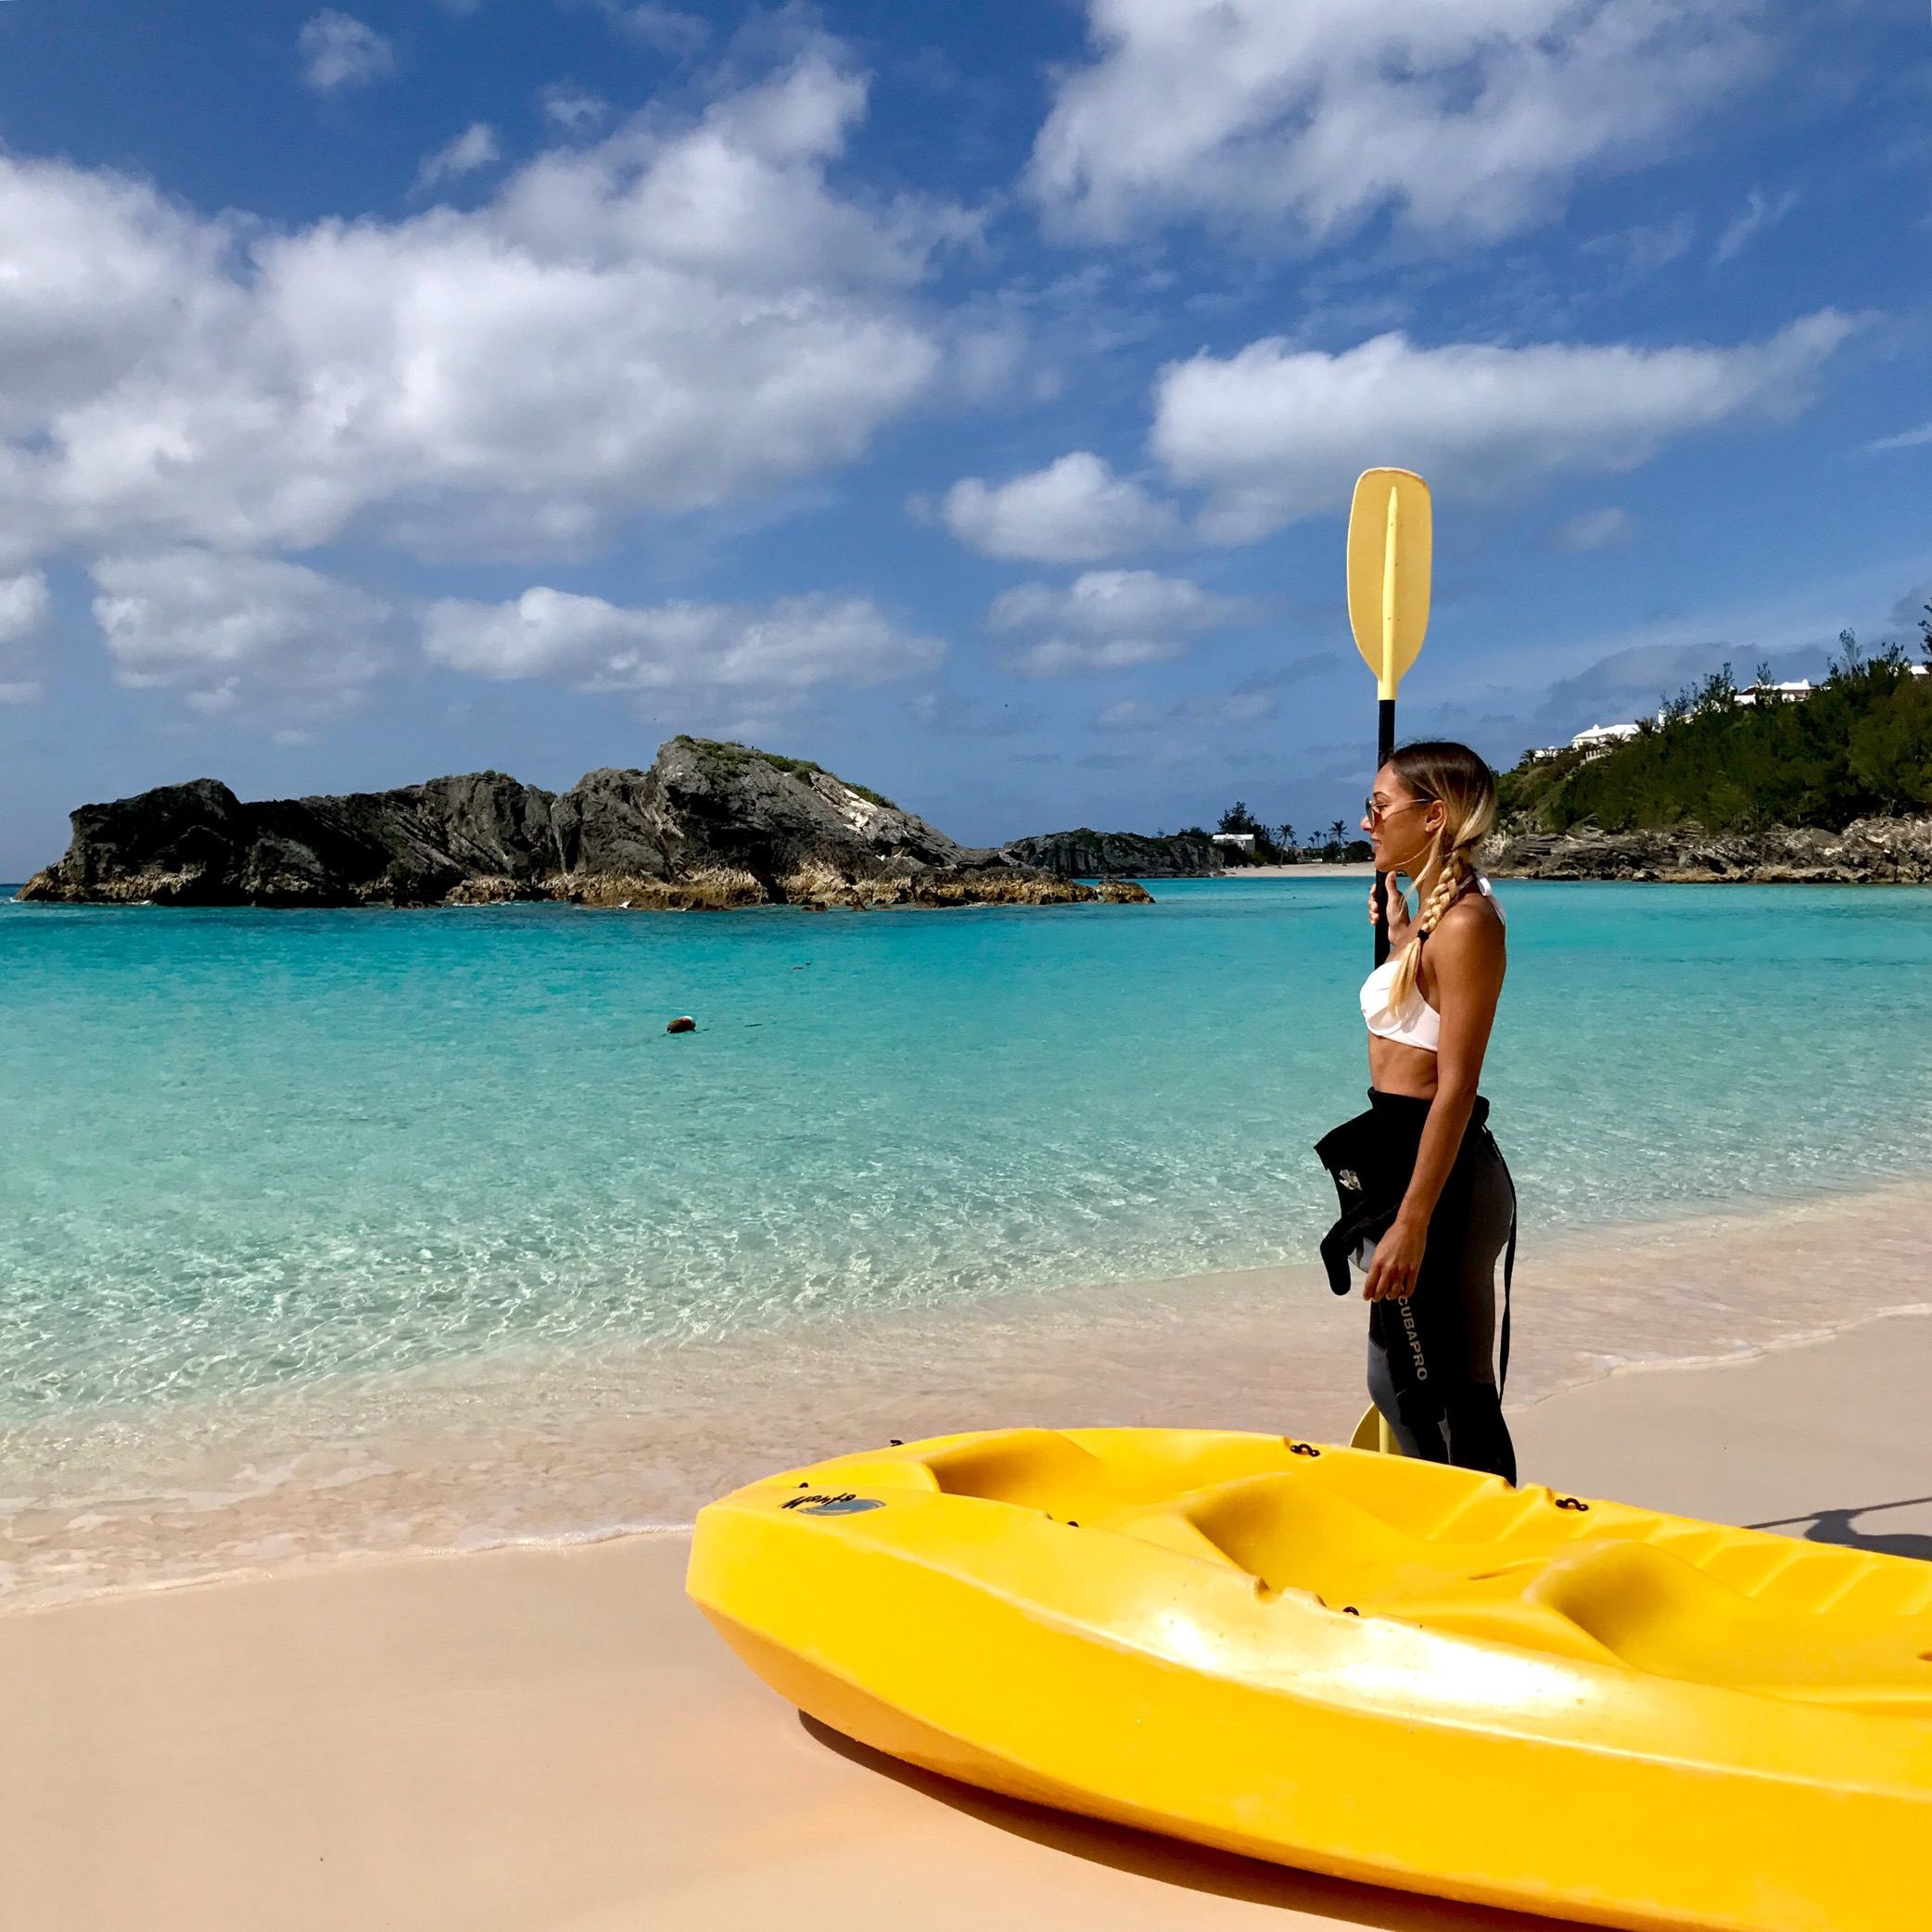 Sea Kayaking in the Bahamas